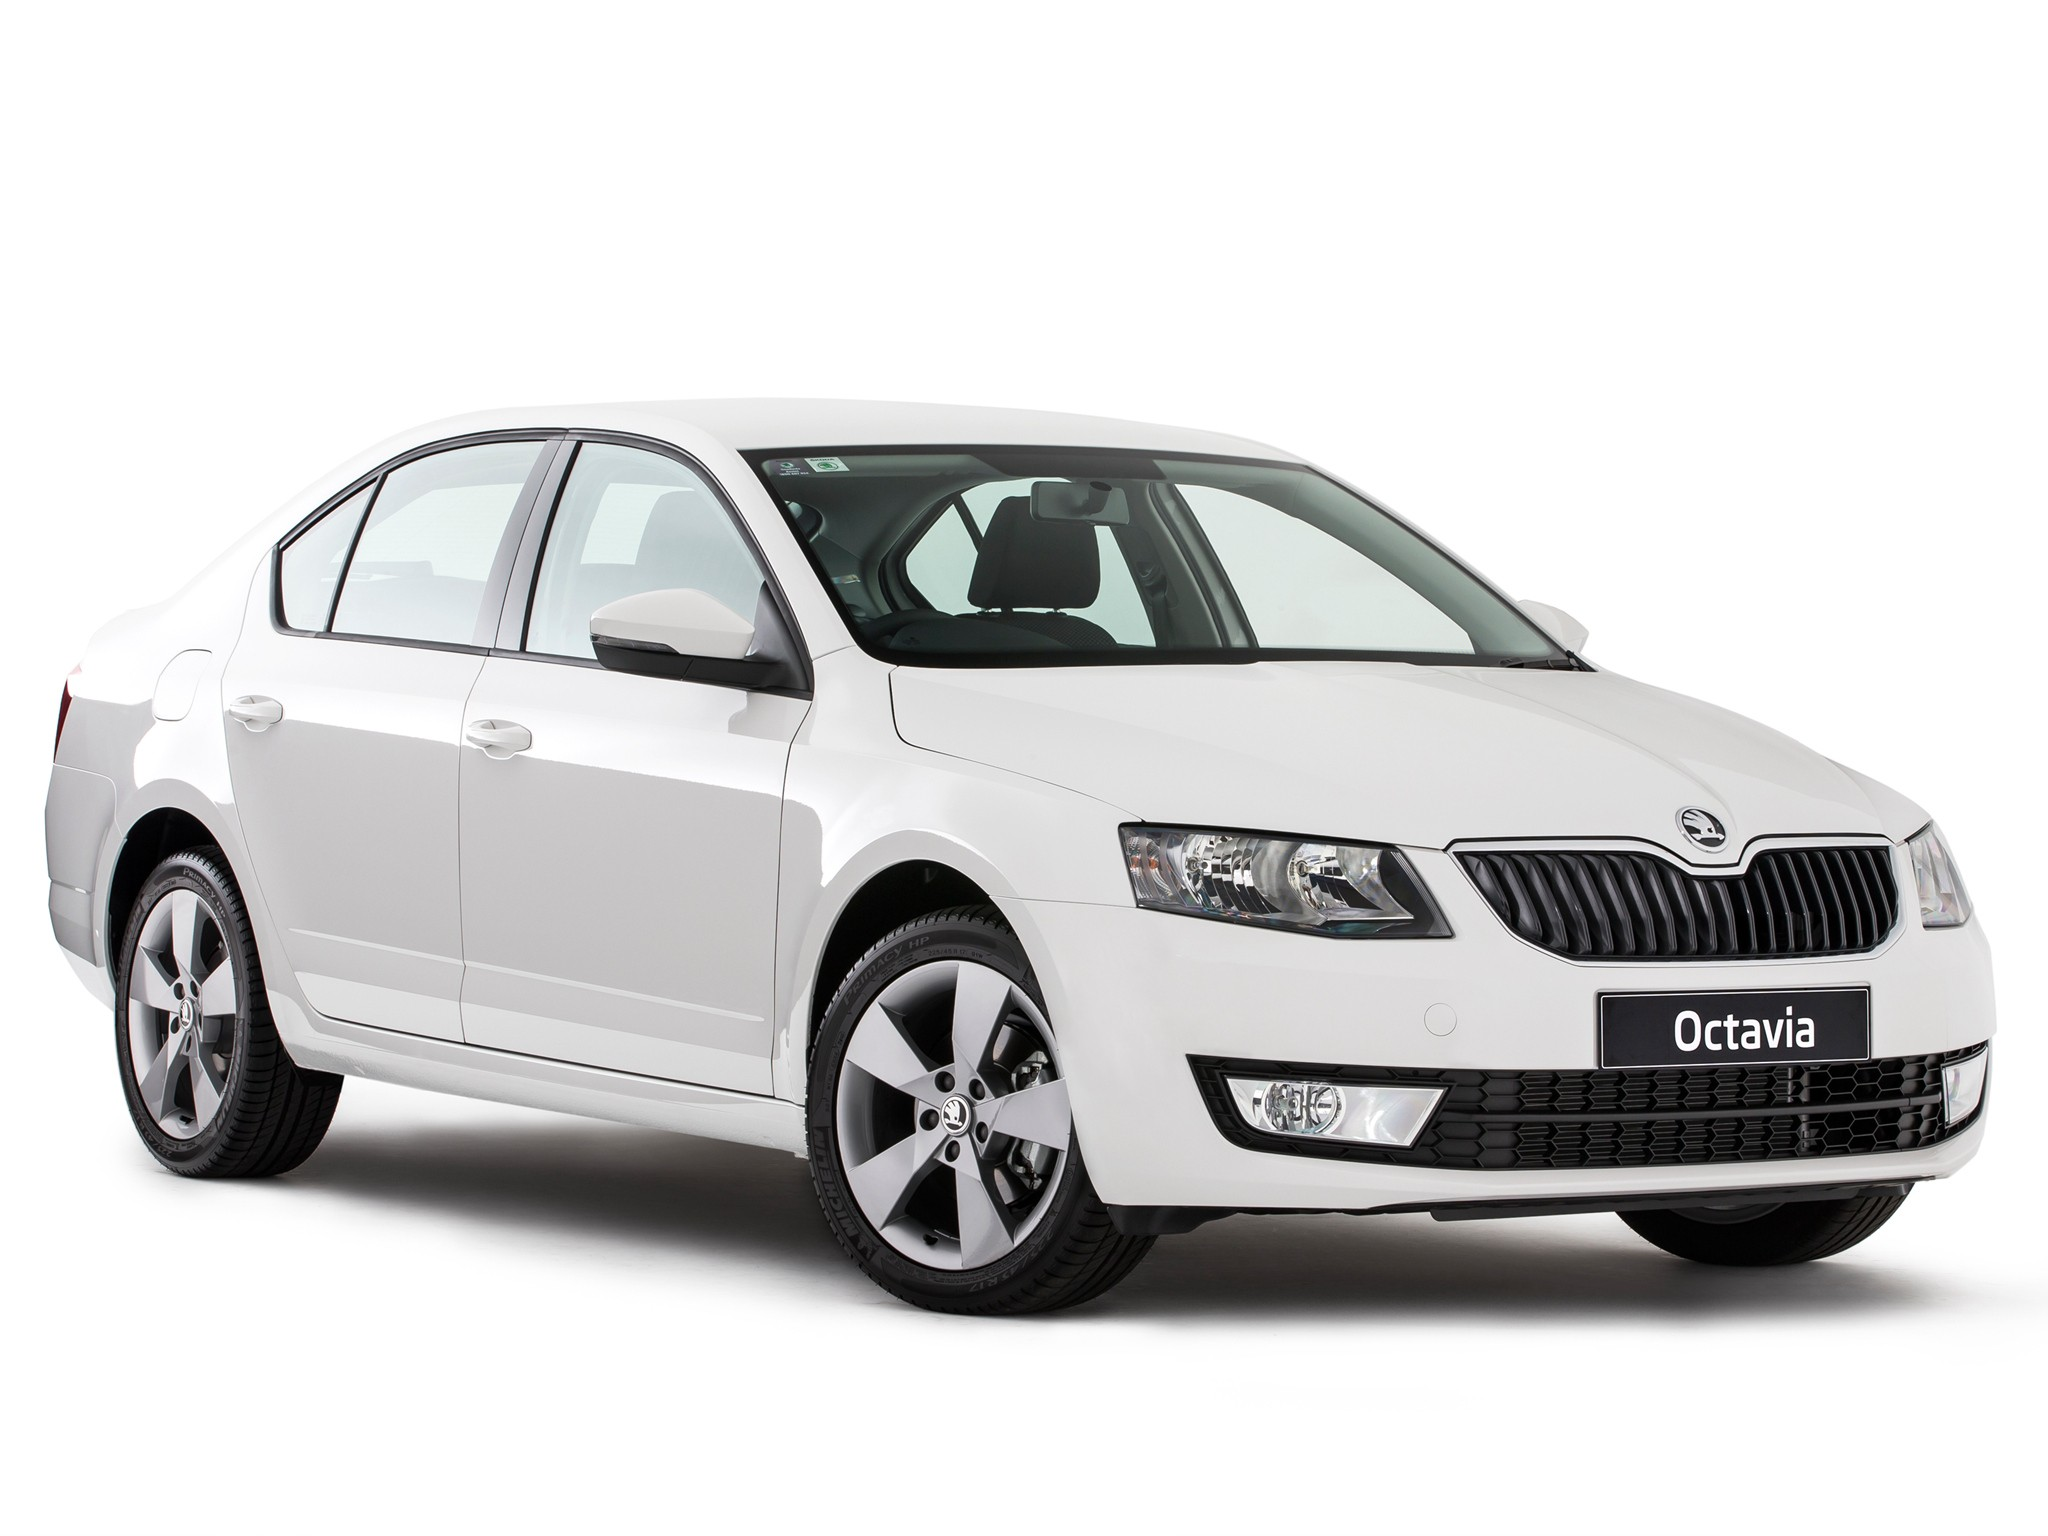 skoda octavia specs 2013 2014 2015 2016 2017 autoevolution. Black Bedroom Furniture Sets. Home Design Ideas